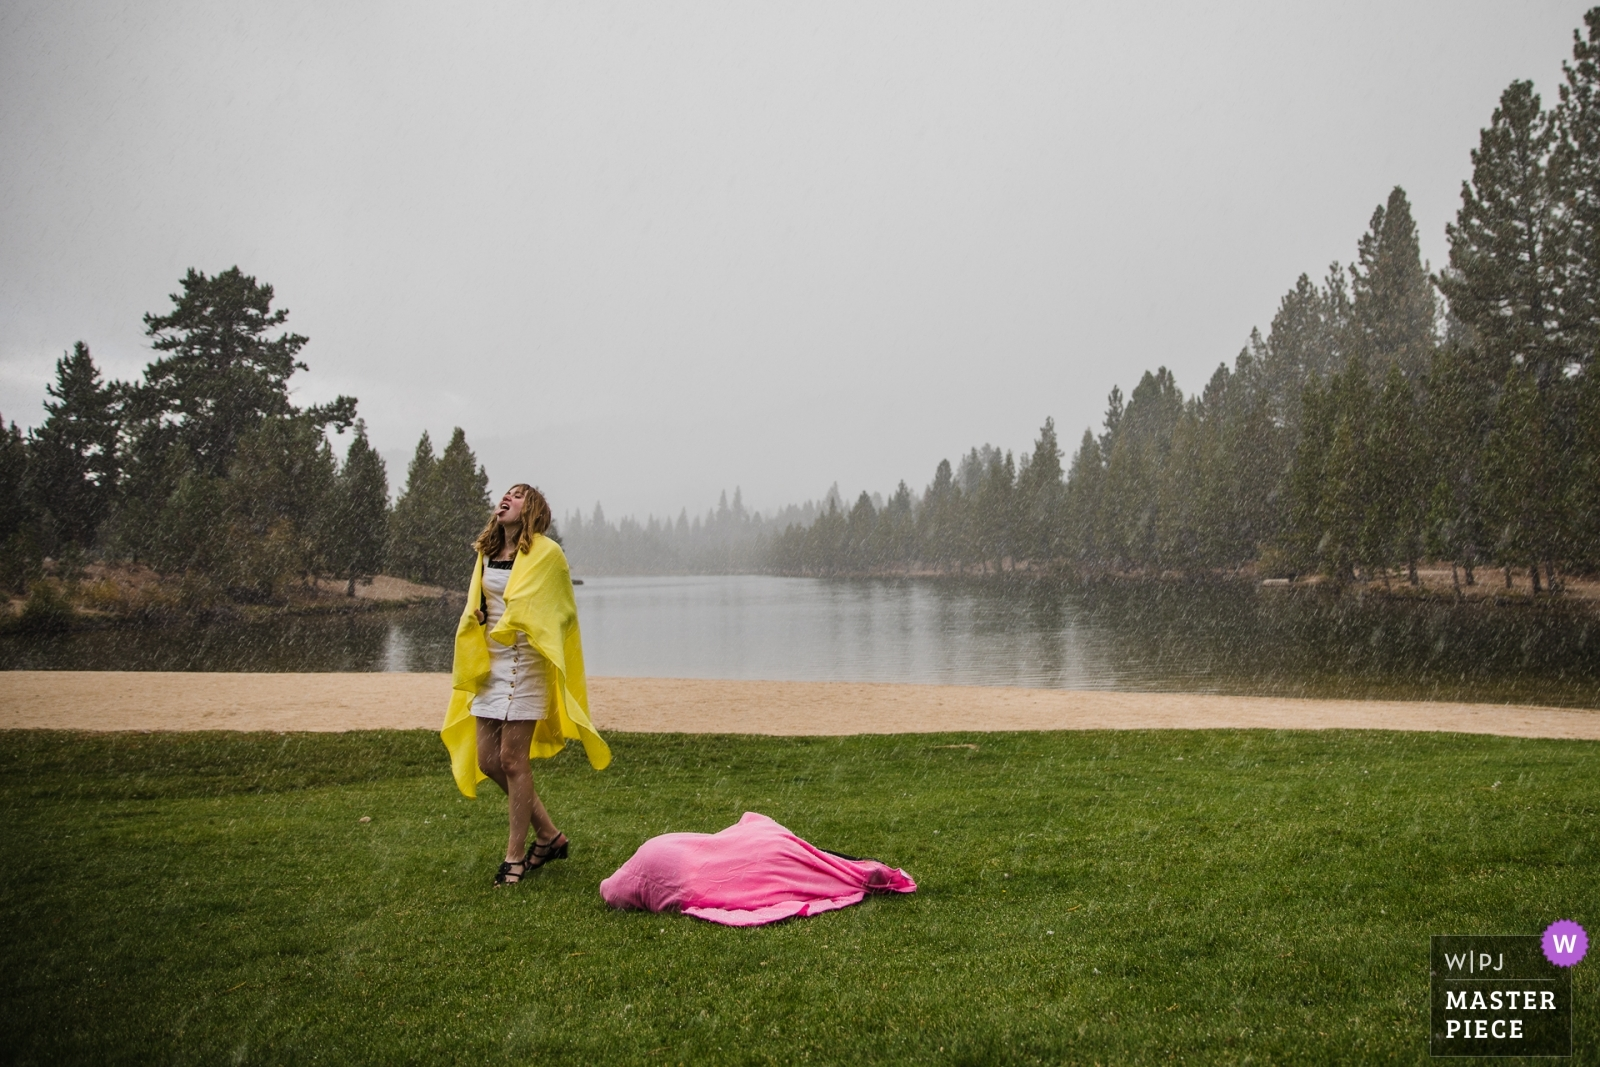 Young wedding guests play in an unexpected September snowstorm, shielded by colorful blankets. - Lake Tahoe, California - Northern Wedding Photography -  | Tahoe Paradise Park: South Lake Tahoe, CA